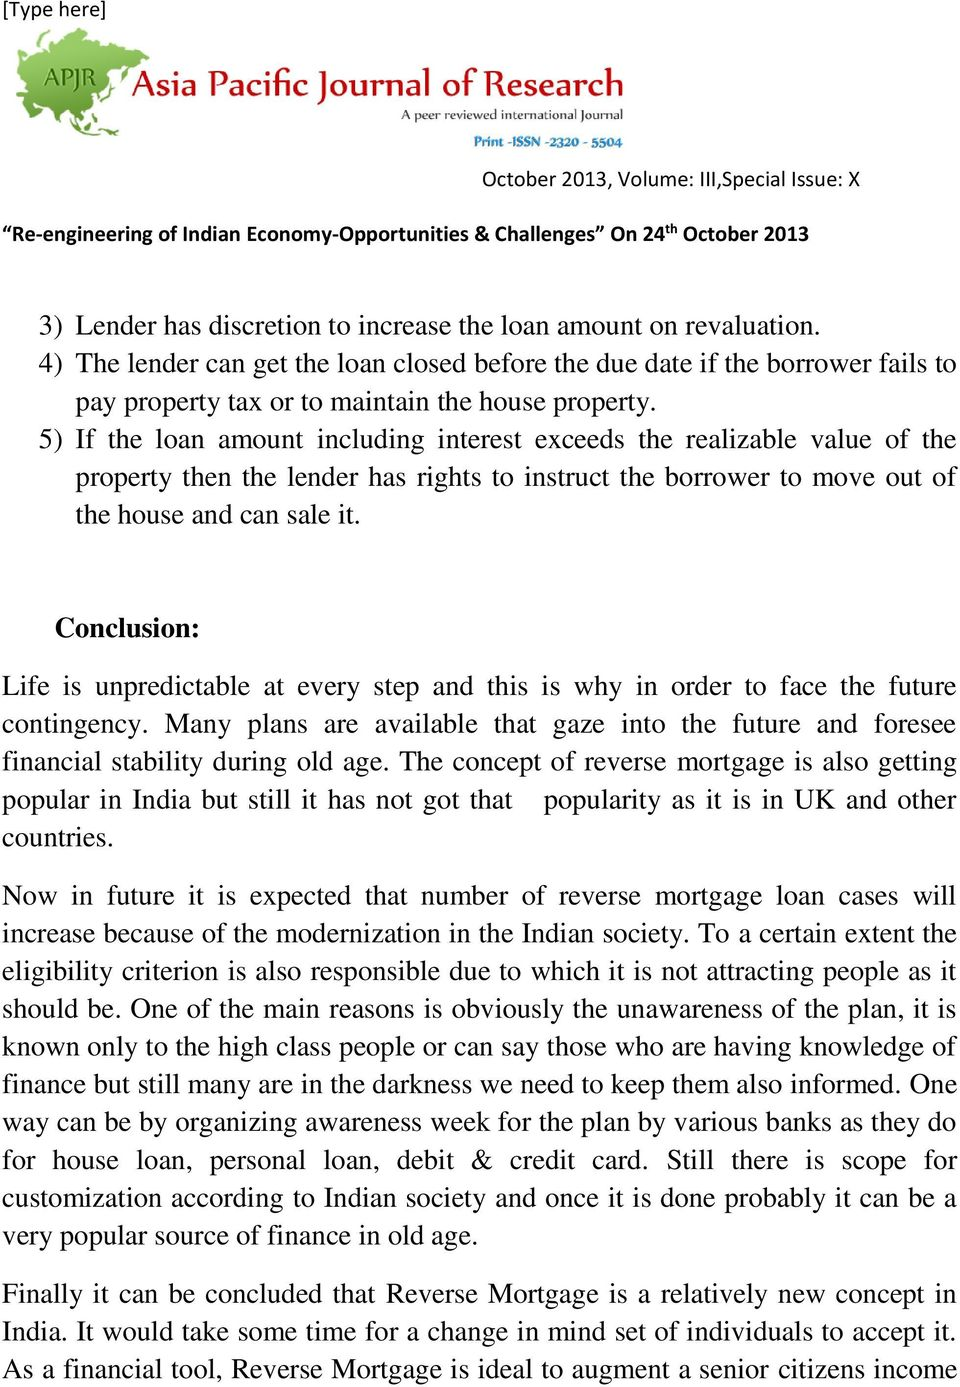 5) If the loan amount including interest exceeds the realizable value of the property then the lender has rights to instruct the borrower to move out of the house and can sale it.